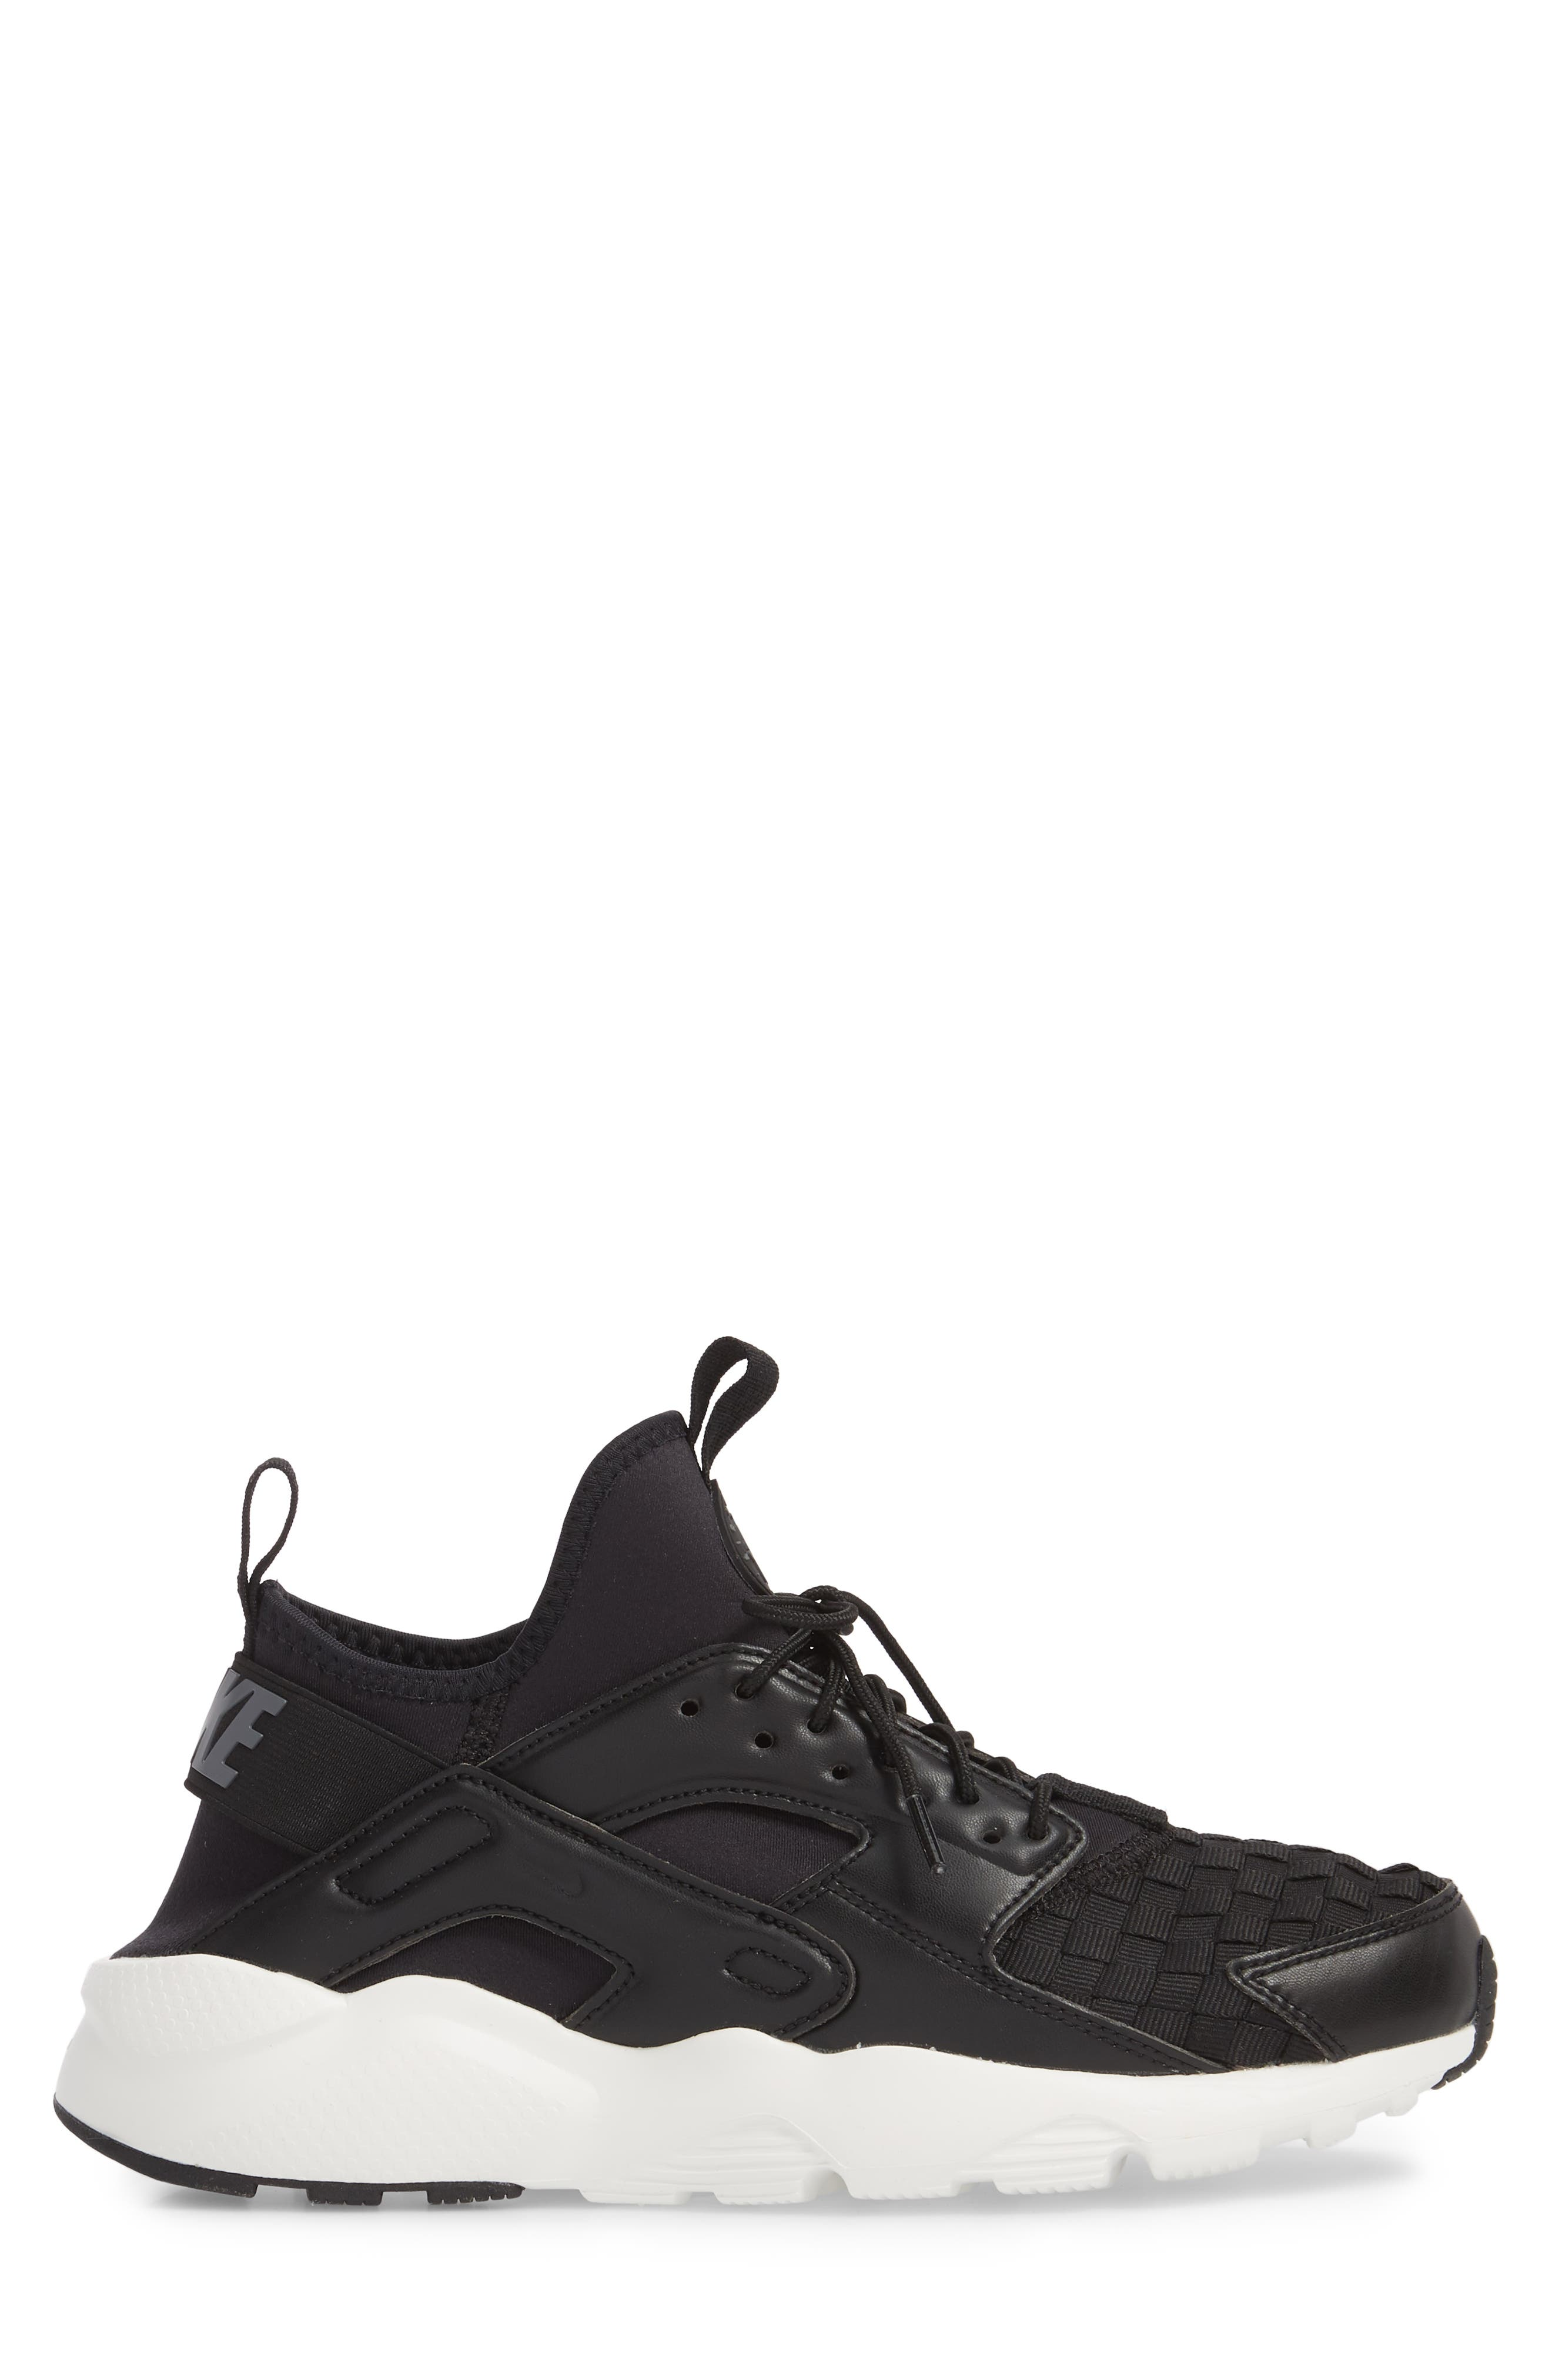 thoughts on exquisite design great fit order huarache ultra triple black ops 3 4ad6f 906b6